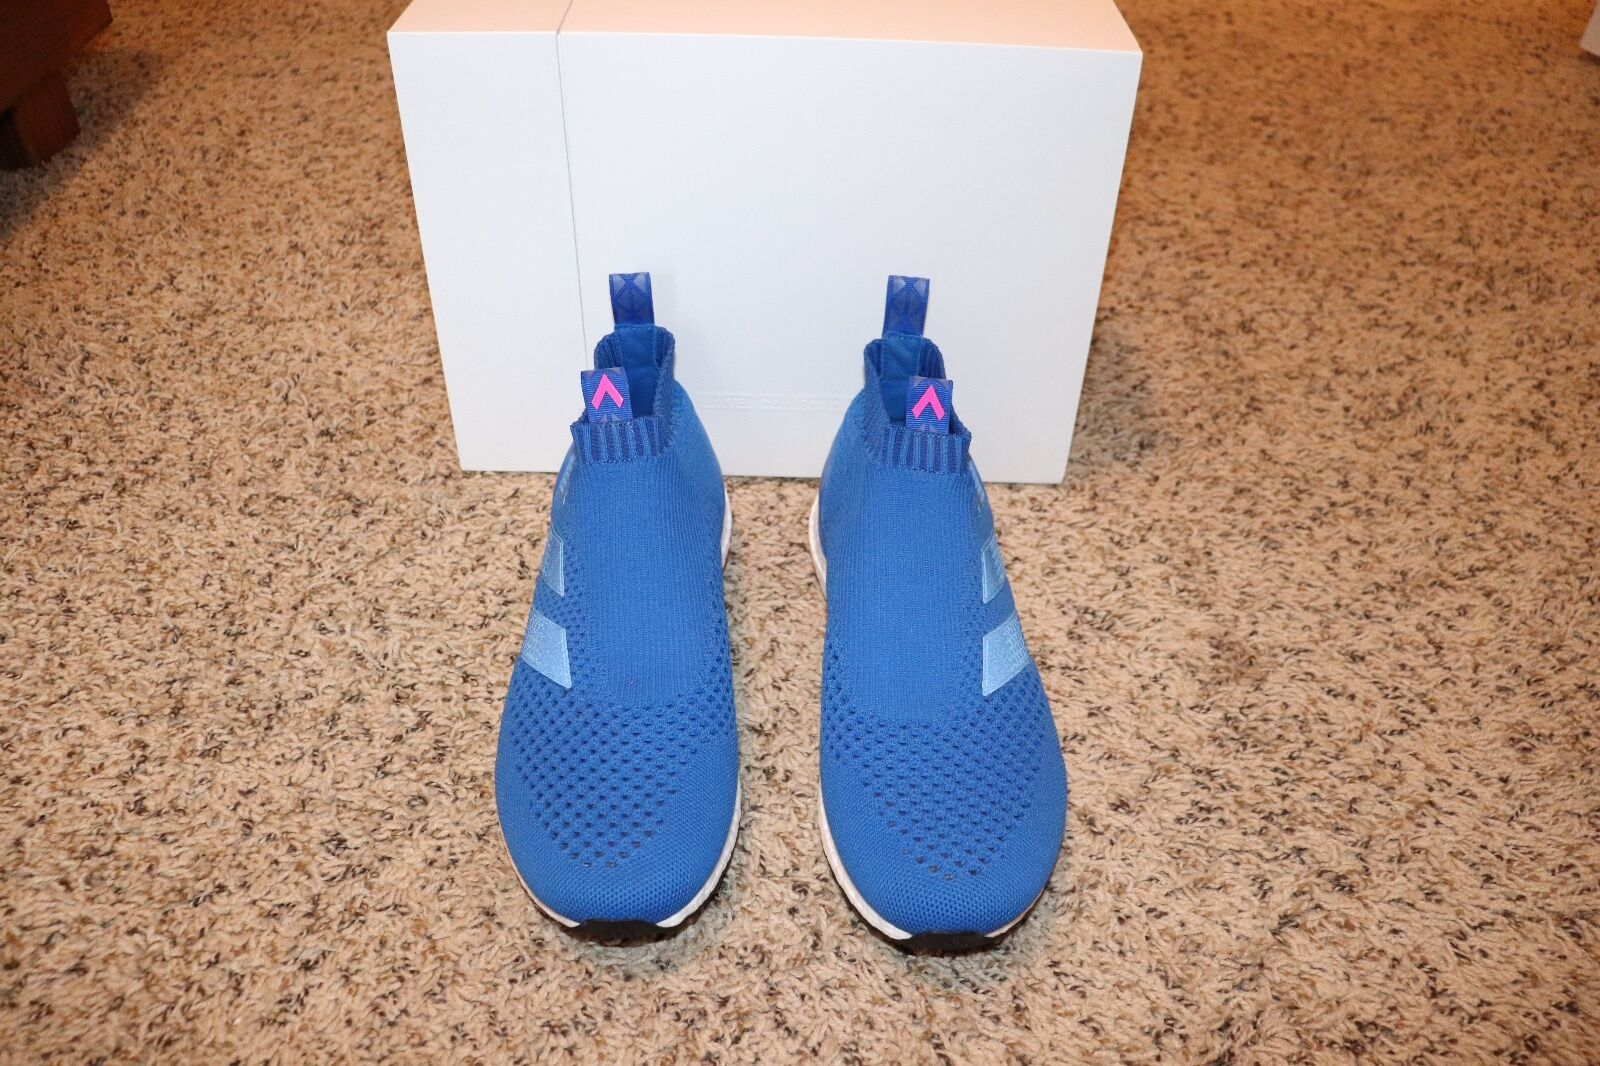 Adidas Ace 17+ PureControl Ultra Boost BY9090 SZ 11 bluee